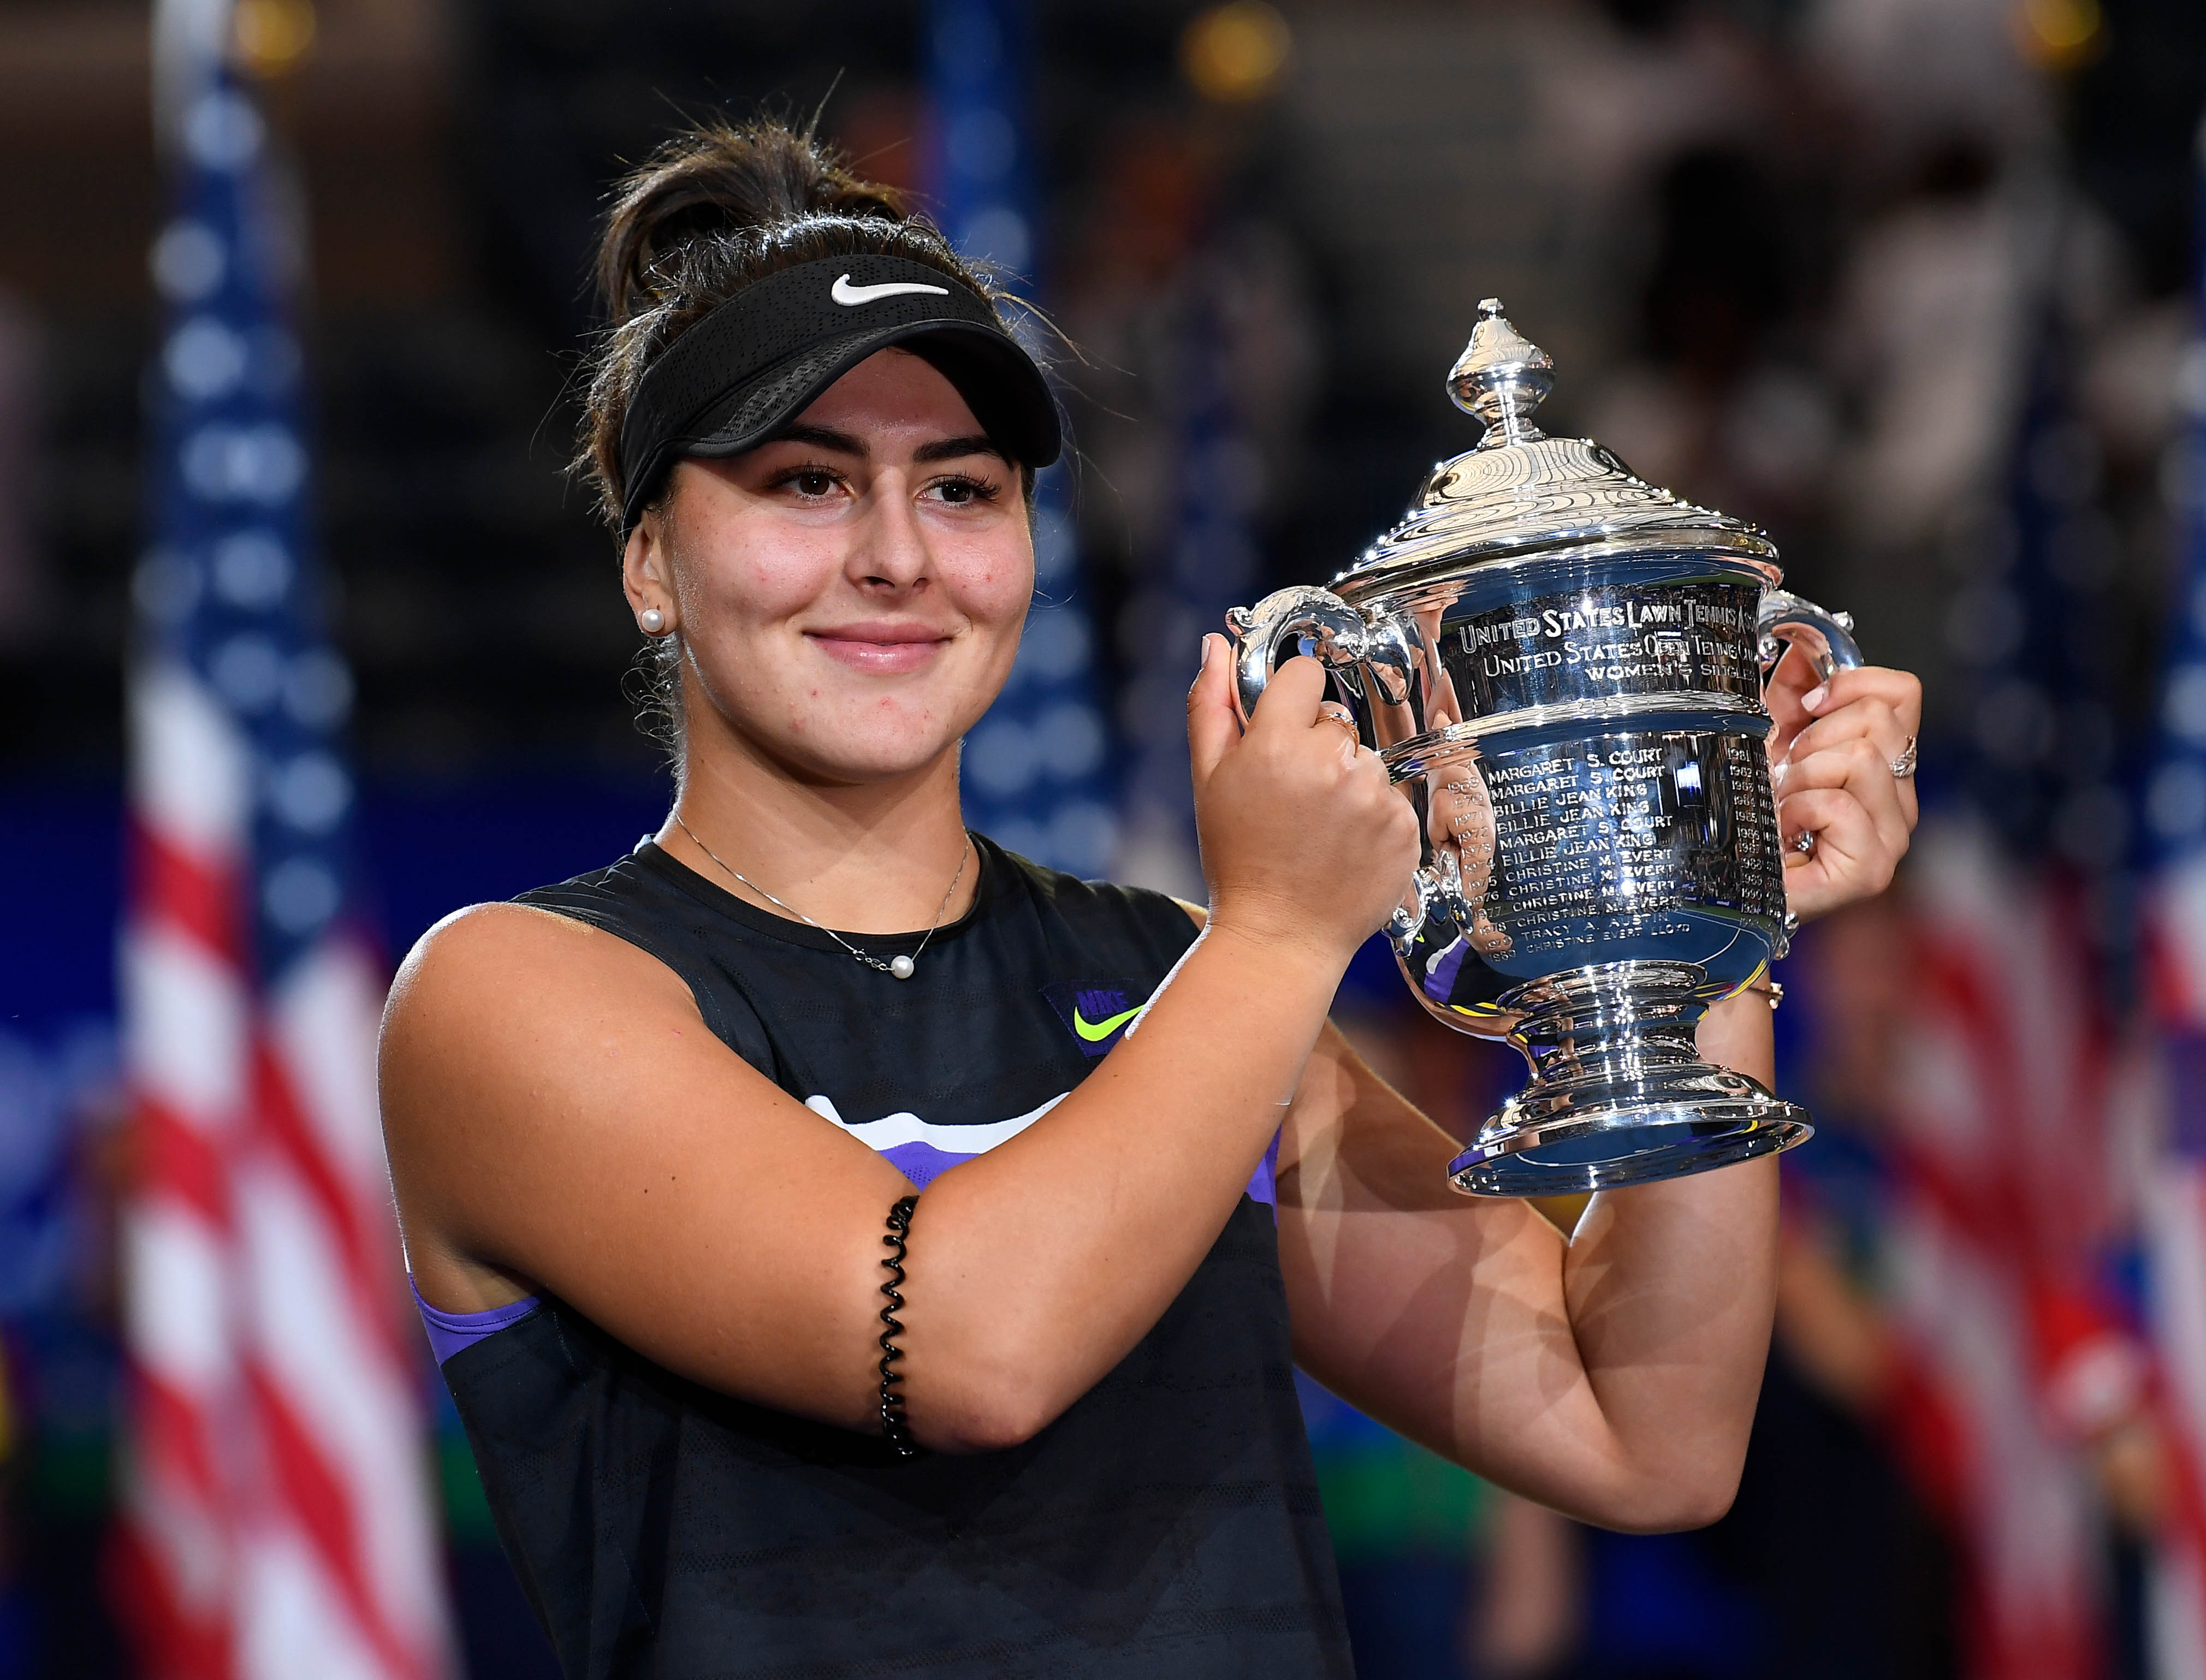 Bianca Andreescu pulls out of U.S. Open